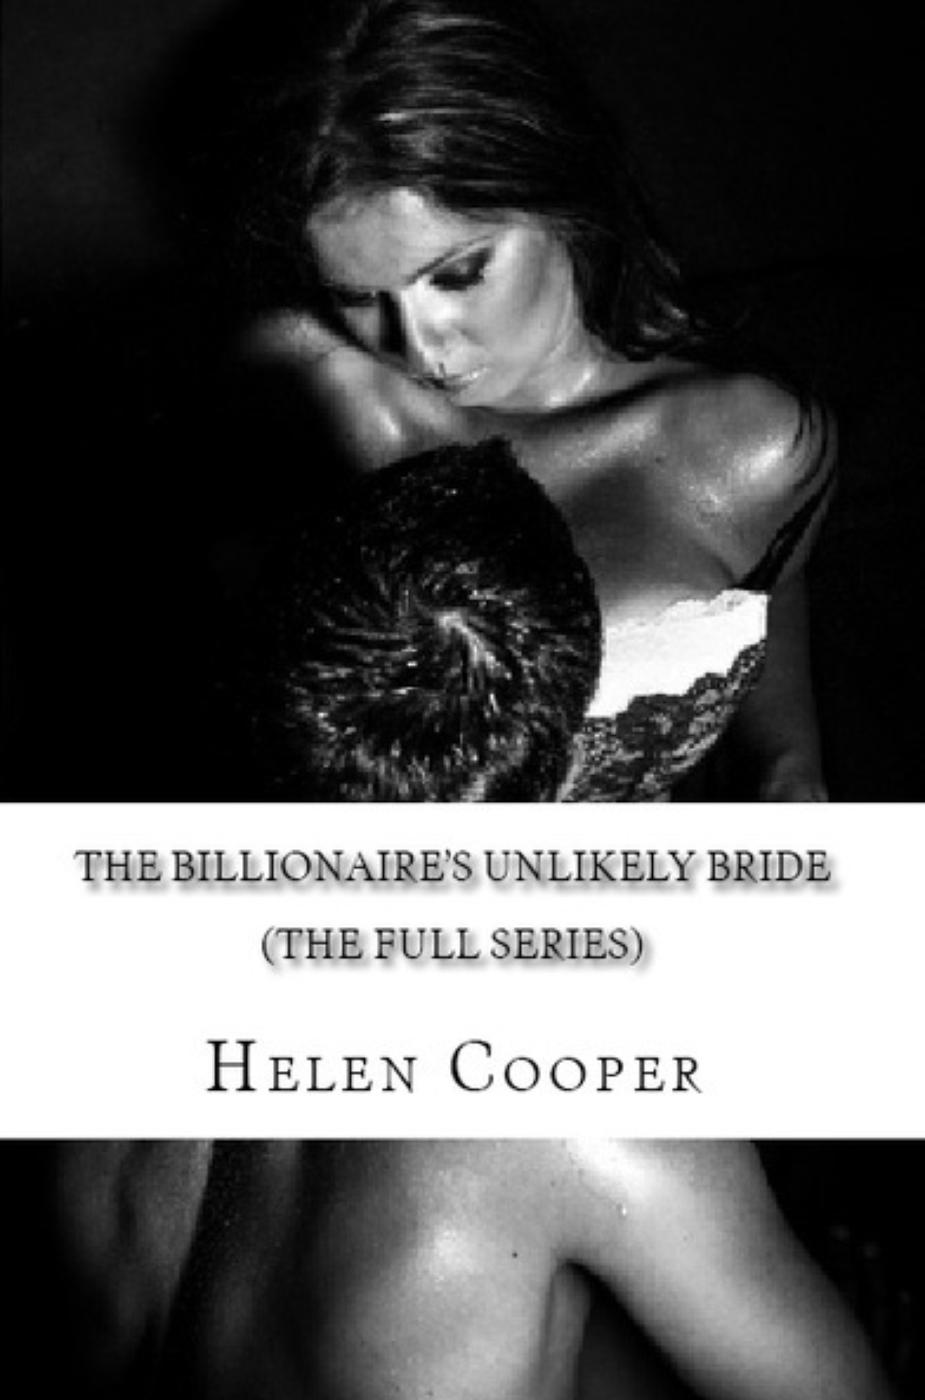 The Billionaire's Unlikely Bride